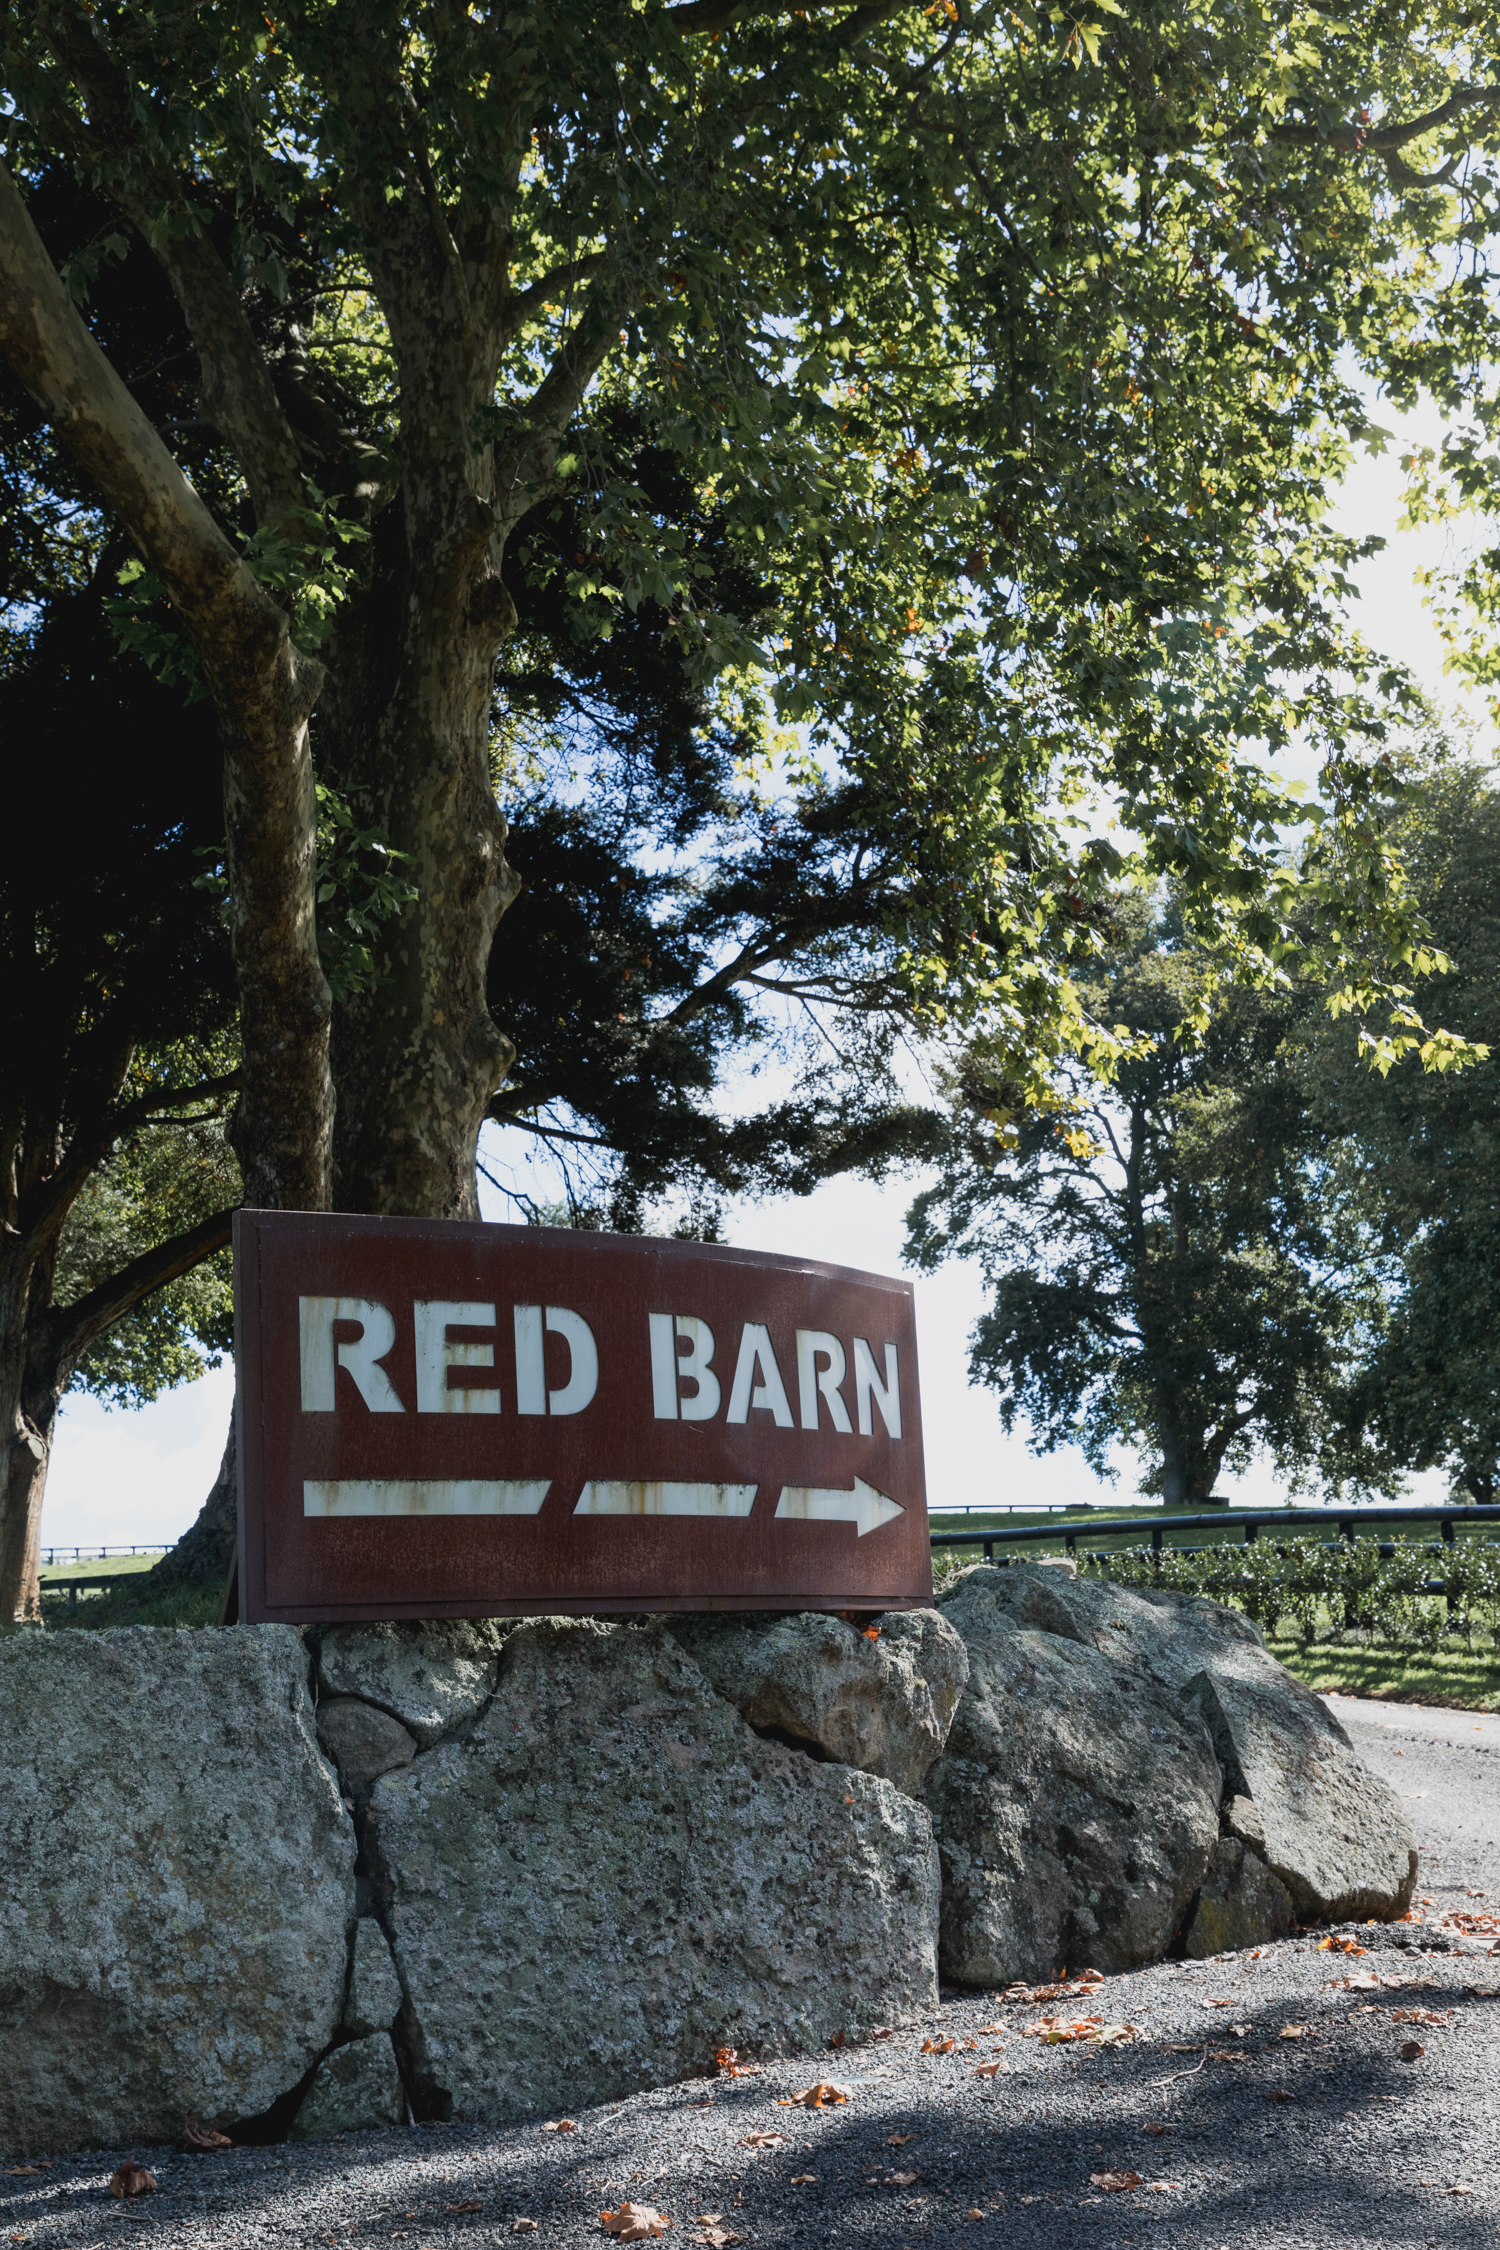 wedding-at-the-red-barn-new-zealand-wedding-photographer-front-sign.jpg